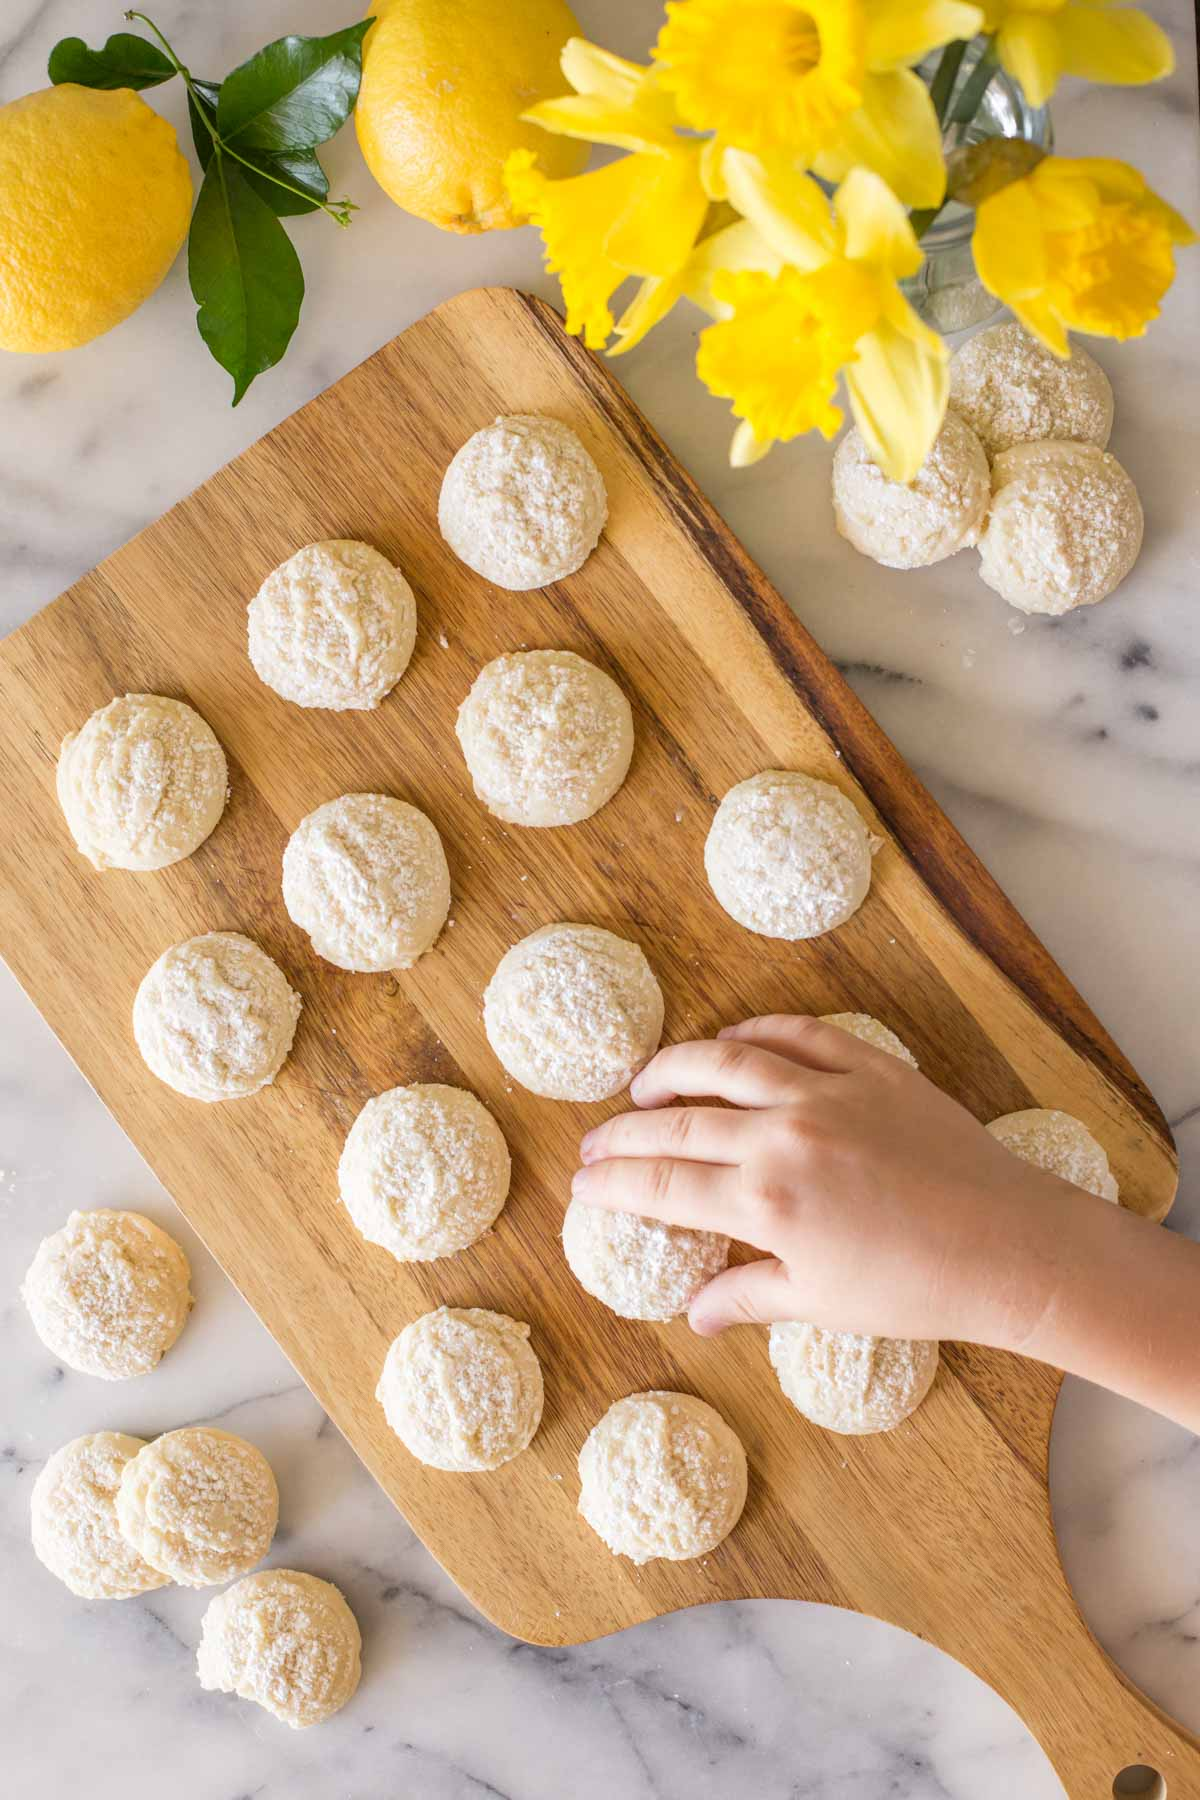 Hand reaching for Lemon Cookie on a wooden cutting board.